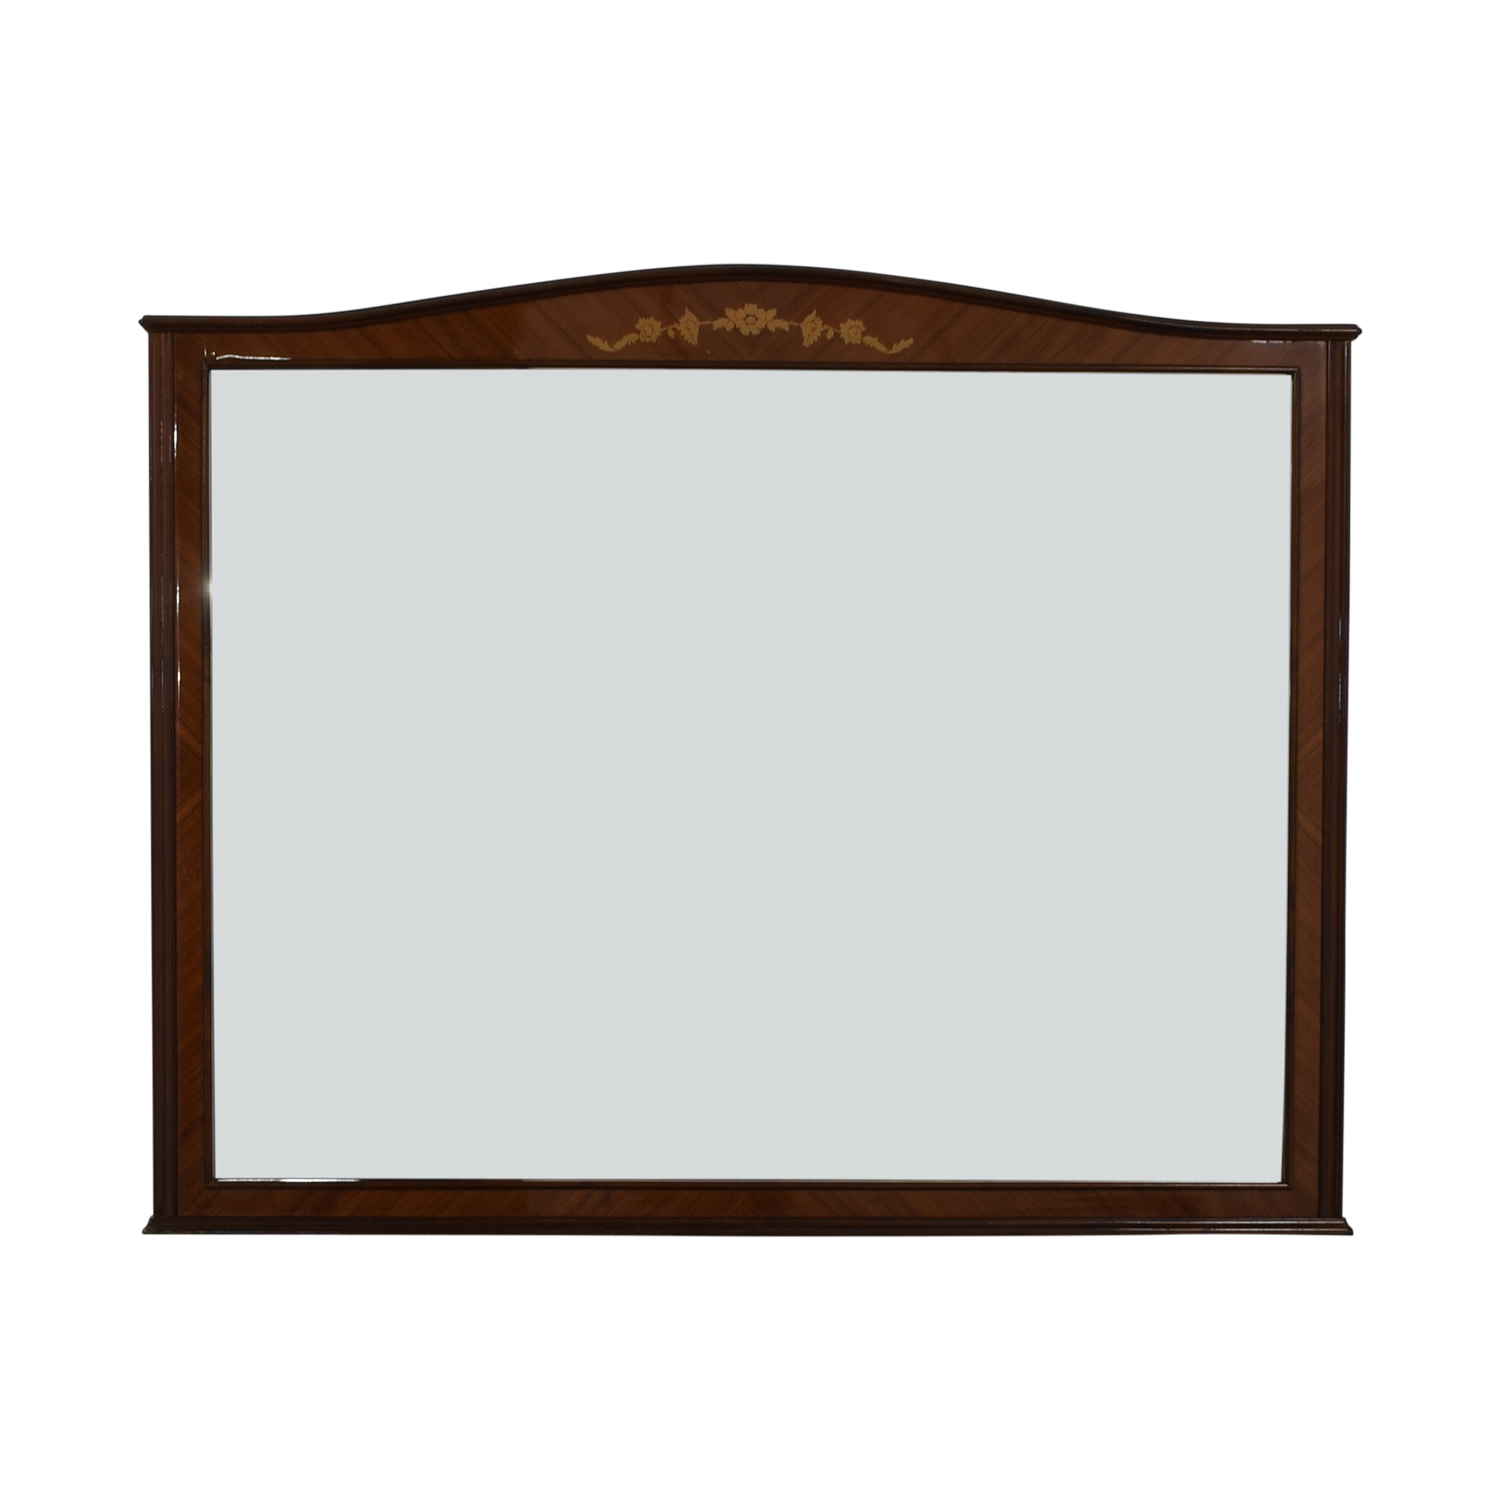 shop Roma Roma Wood Framed Wall Mirror online